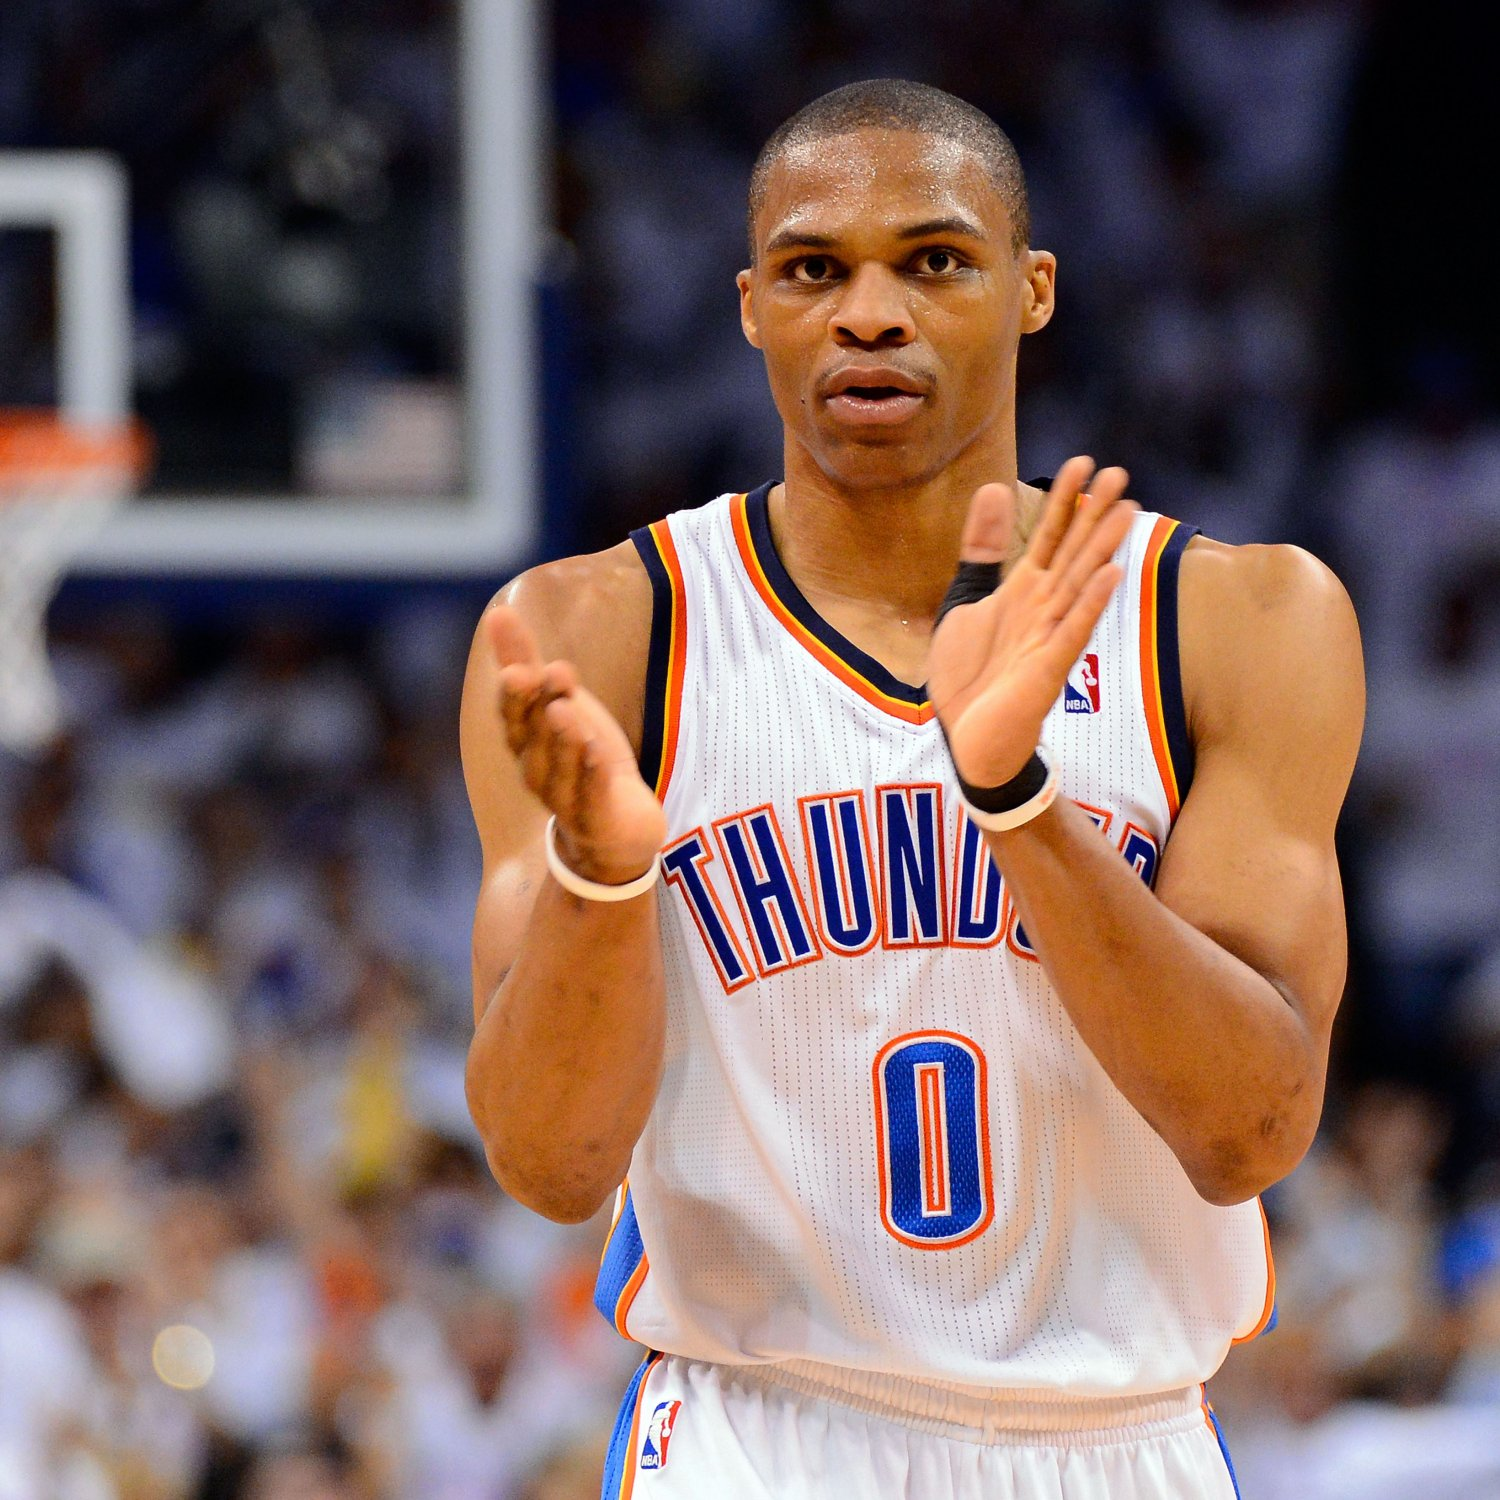 Basketball Player Russell Westbrook - age: 28